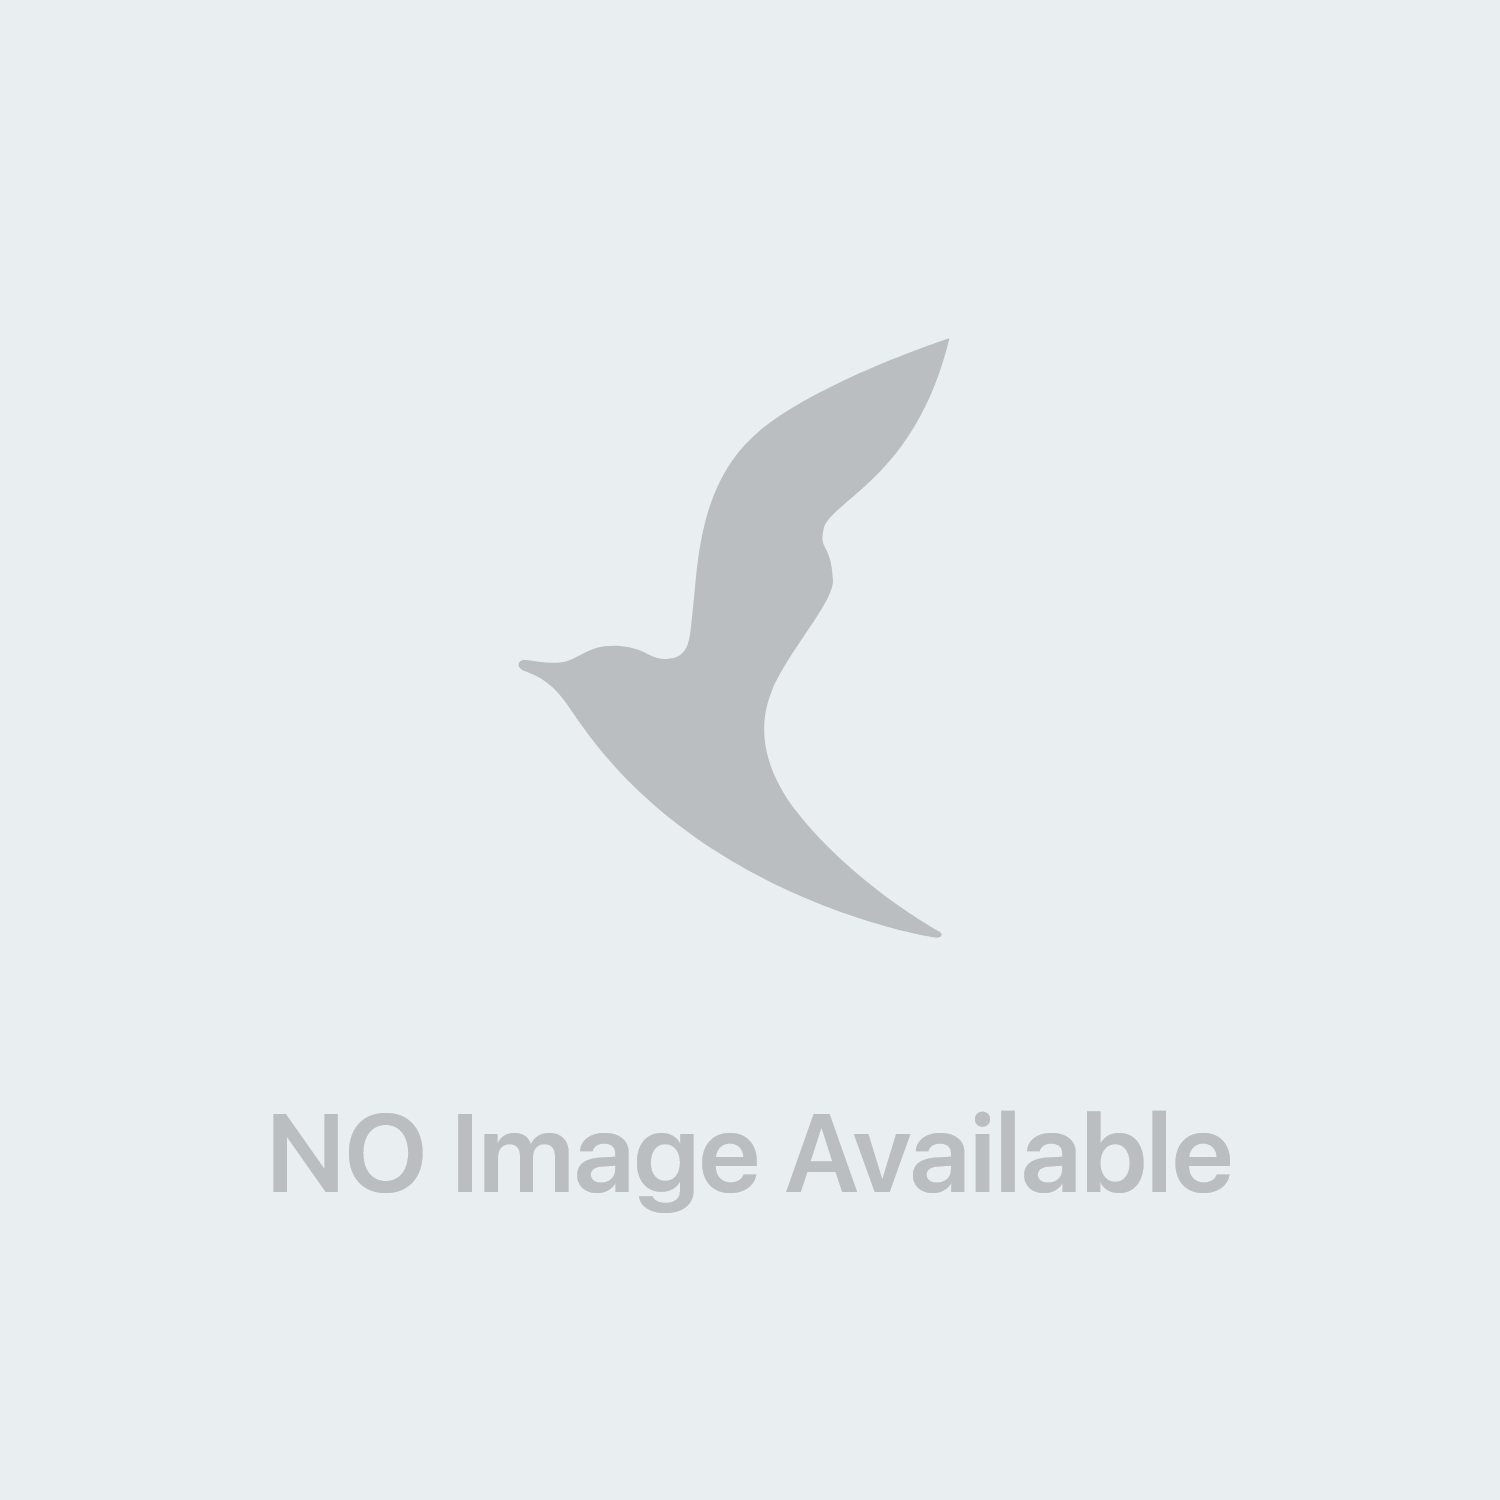 Xentafid Collutorio Flacone 120 ml 0,13%